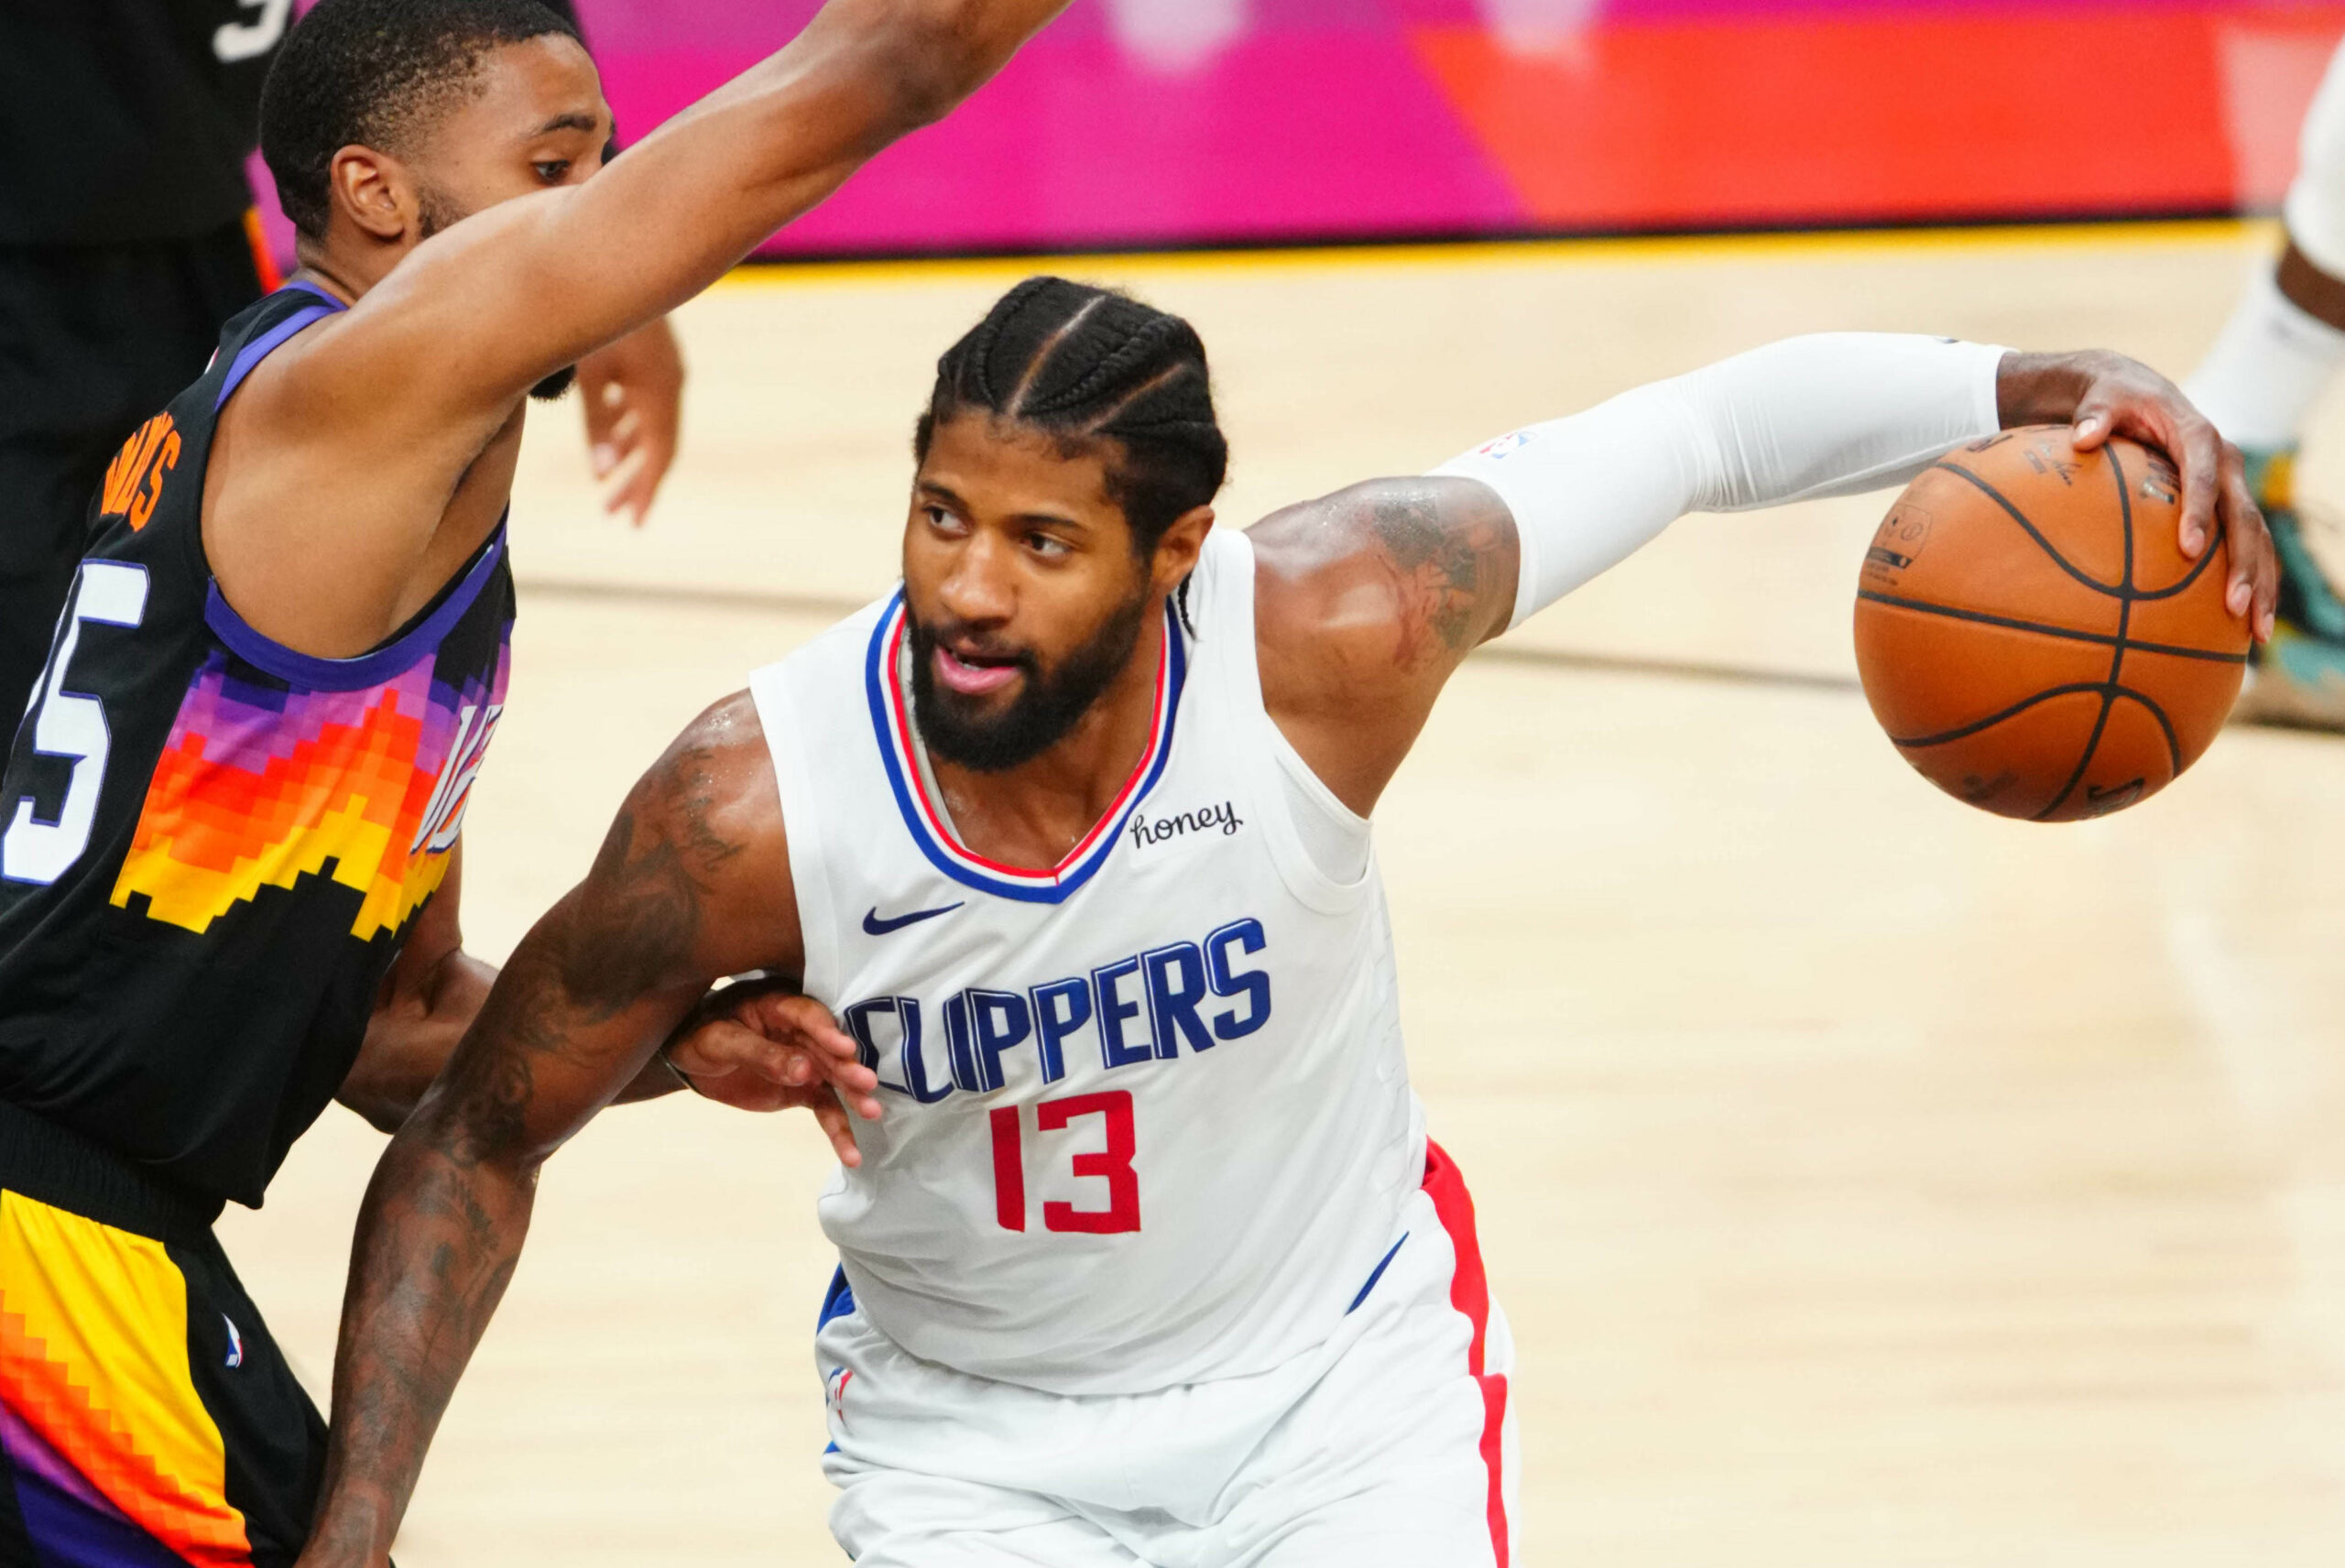 Paul George silences doubters with virtuoso Game 5 performance